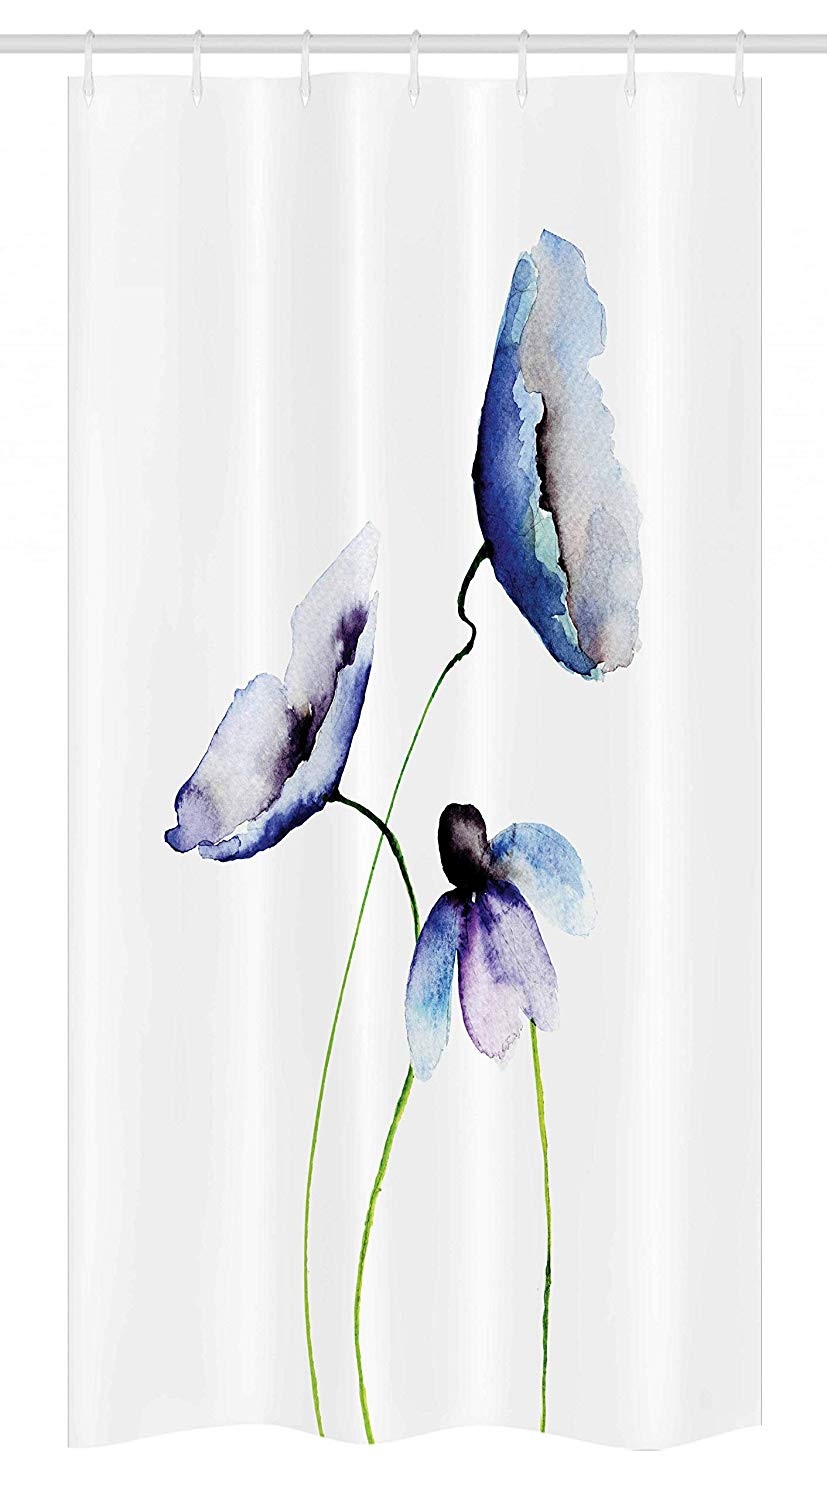 Ambesonne Watercolor Flower Stall Shower Curtain, Abstract Poppies Blossoms Simple Artistic Composition Picture, Fabric Bathroom Decor Set with Hooks, 36 W x 72 L Inches, Lavender Blue Green